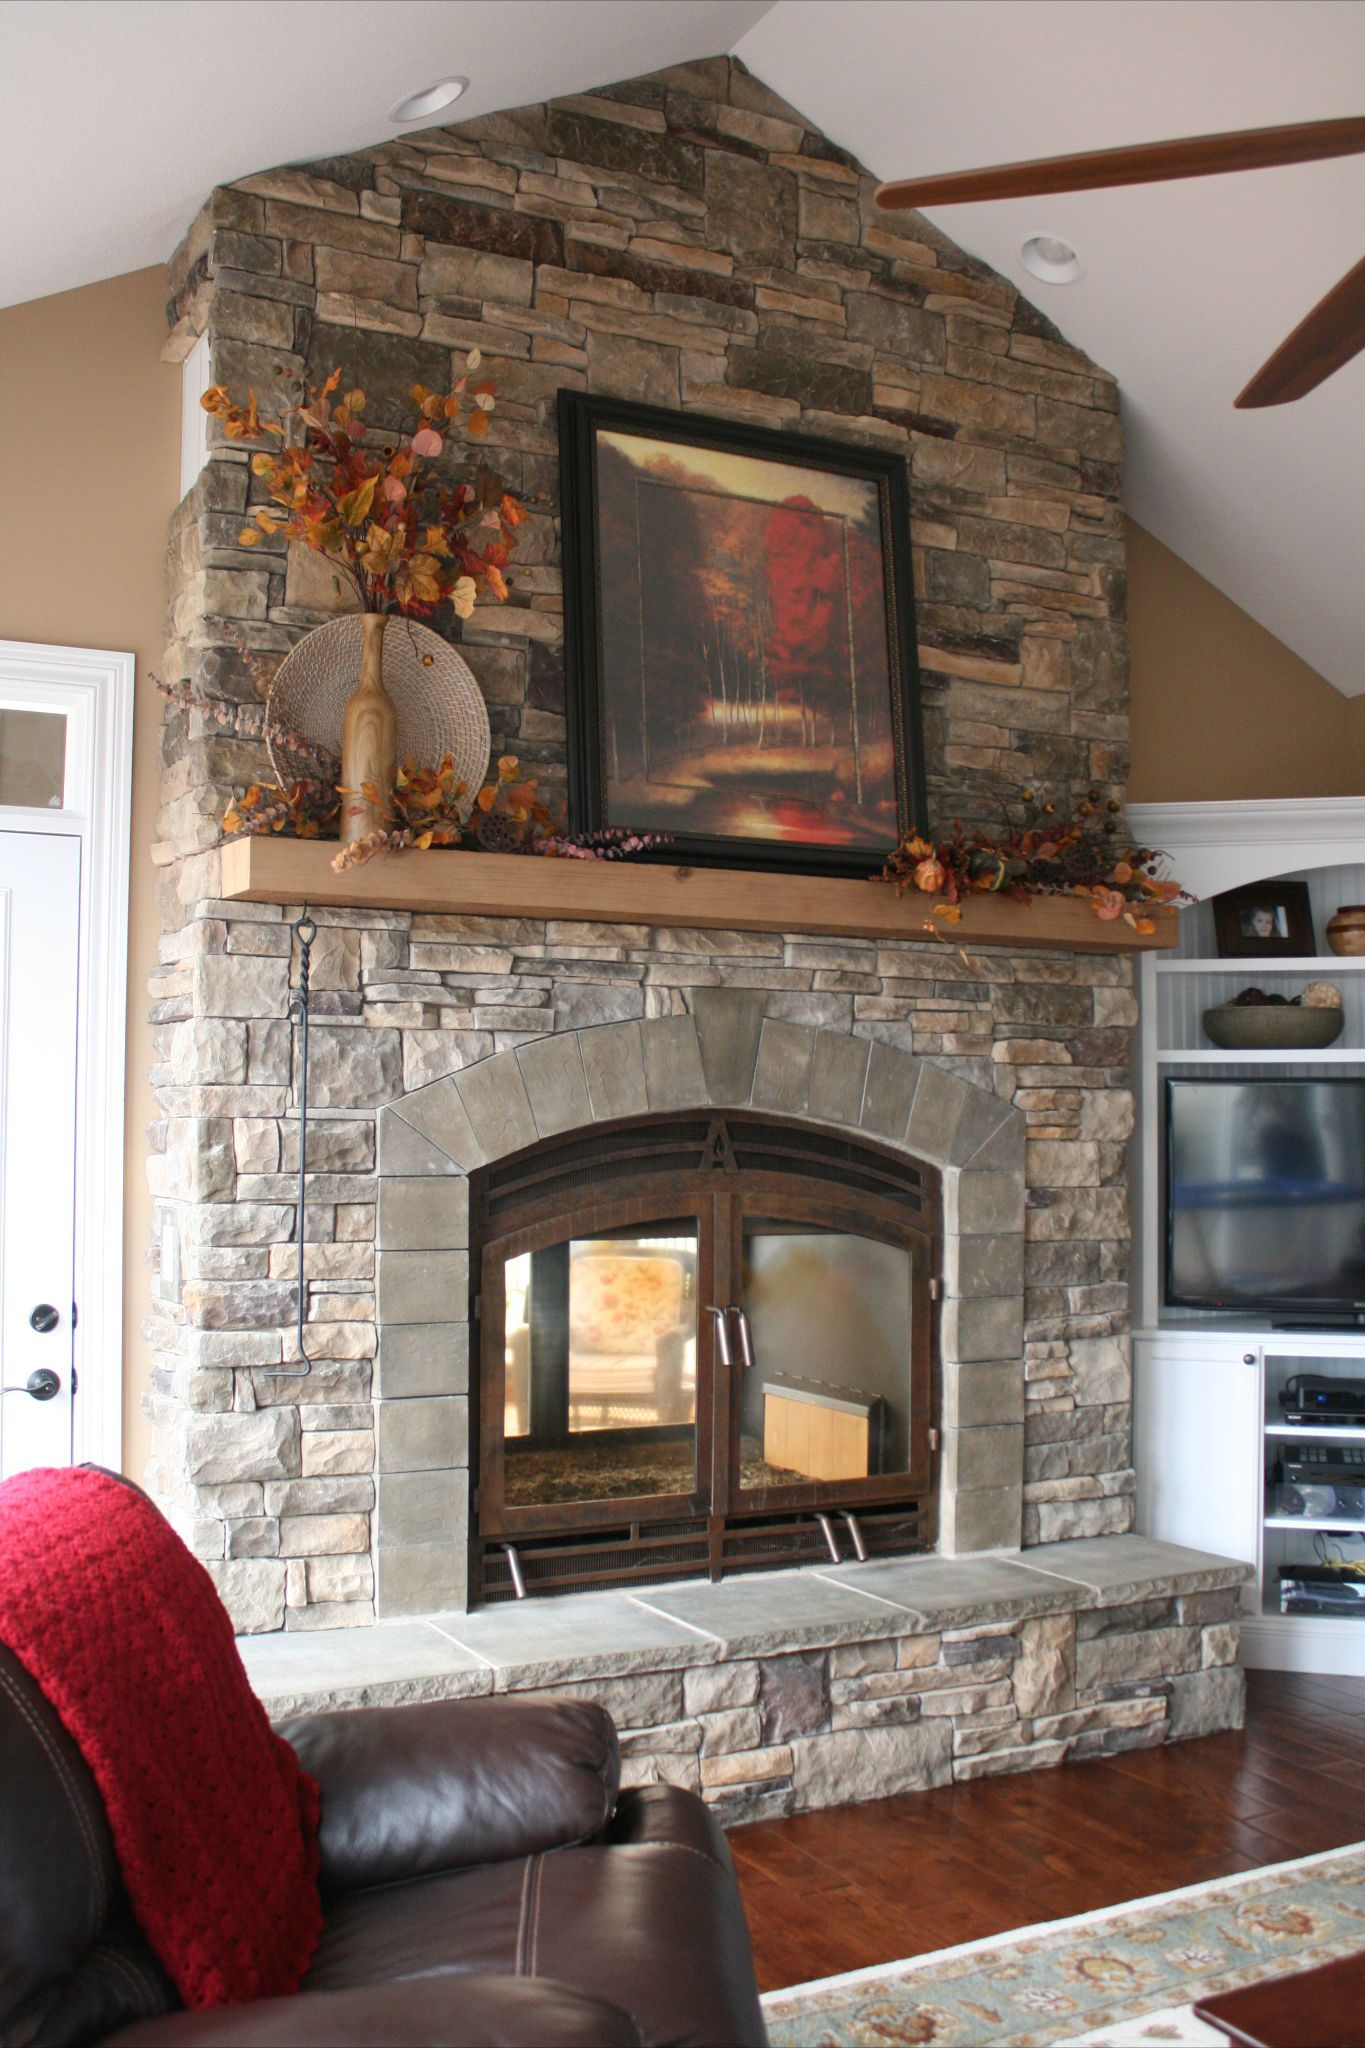 See Through Fireplace With Stone Home Sweet Home Pinterest